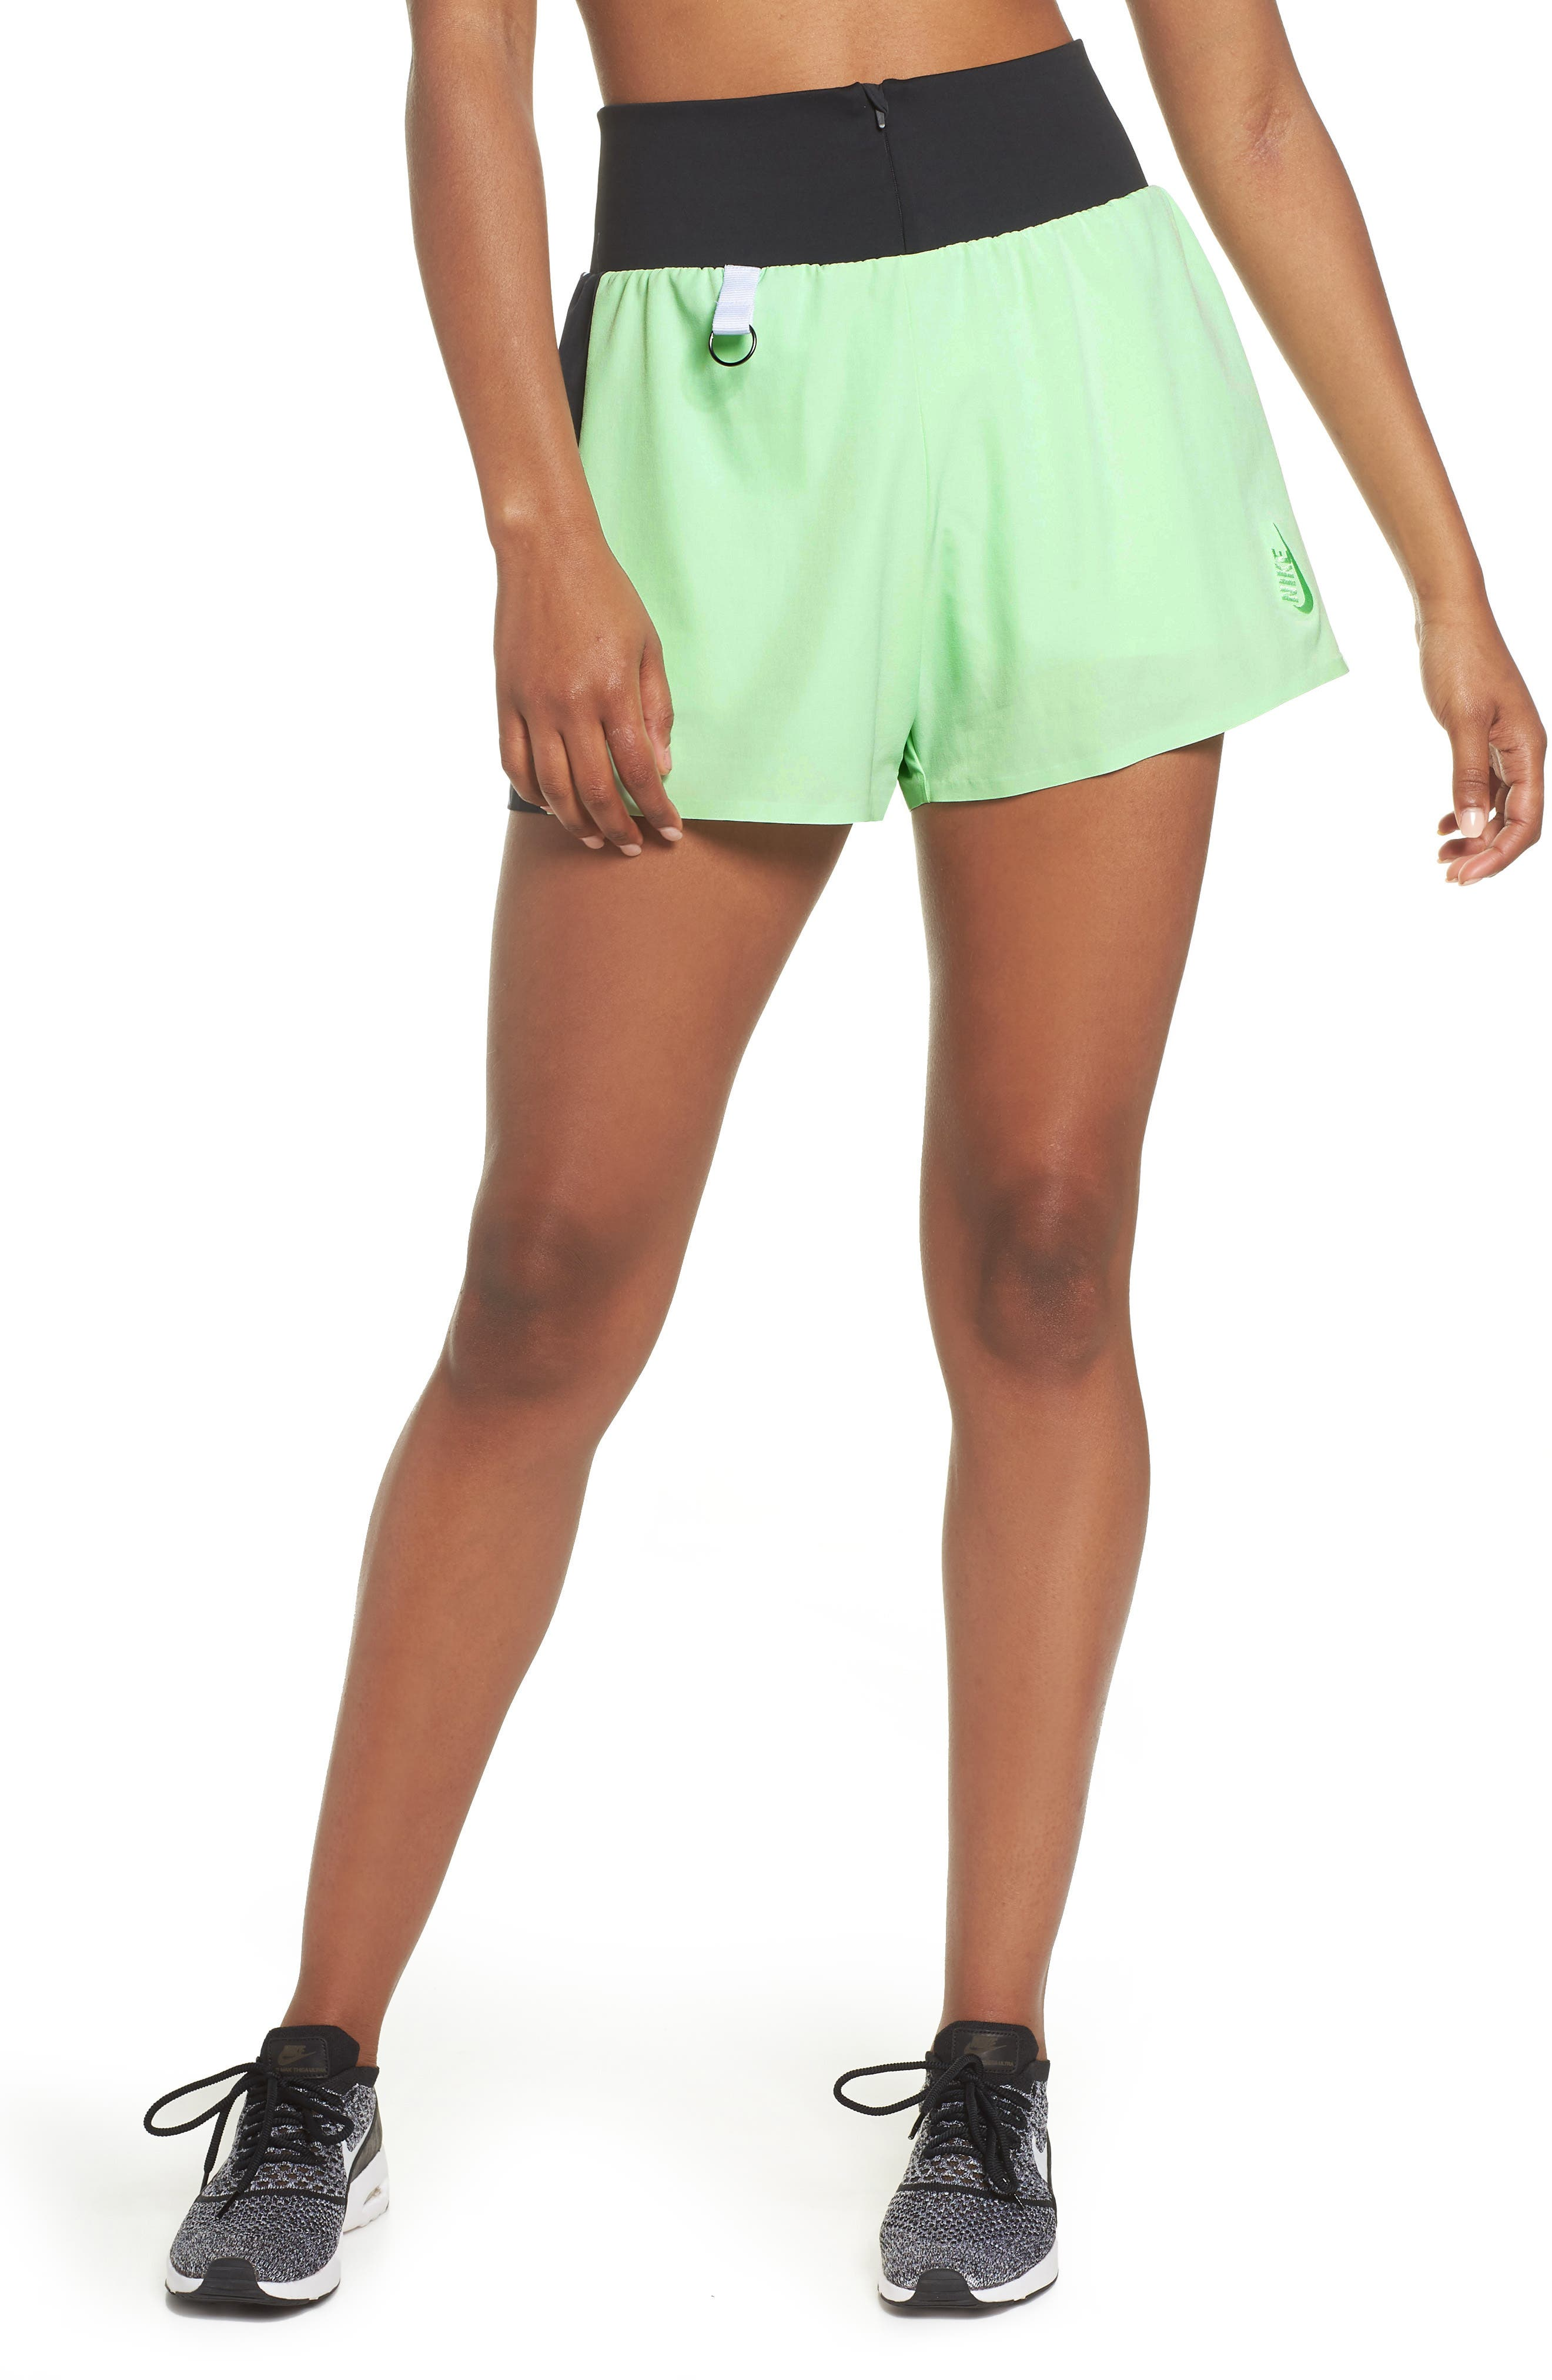 NRG Women's Dri-FIT Running Shorts,                             Main thumbnail 1, color,                             VAPOR GREEN/ BLACK/ WHITE